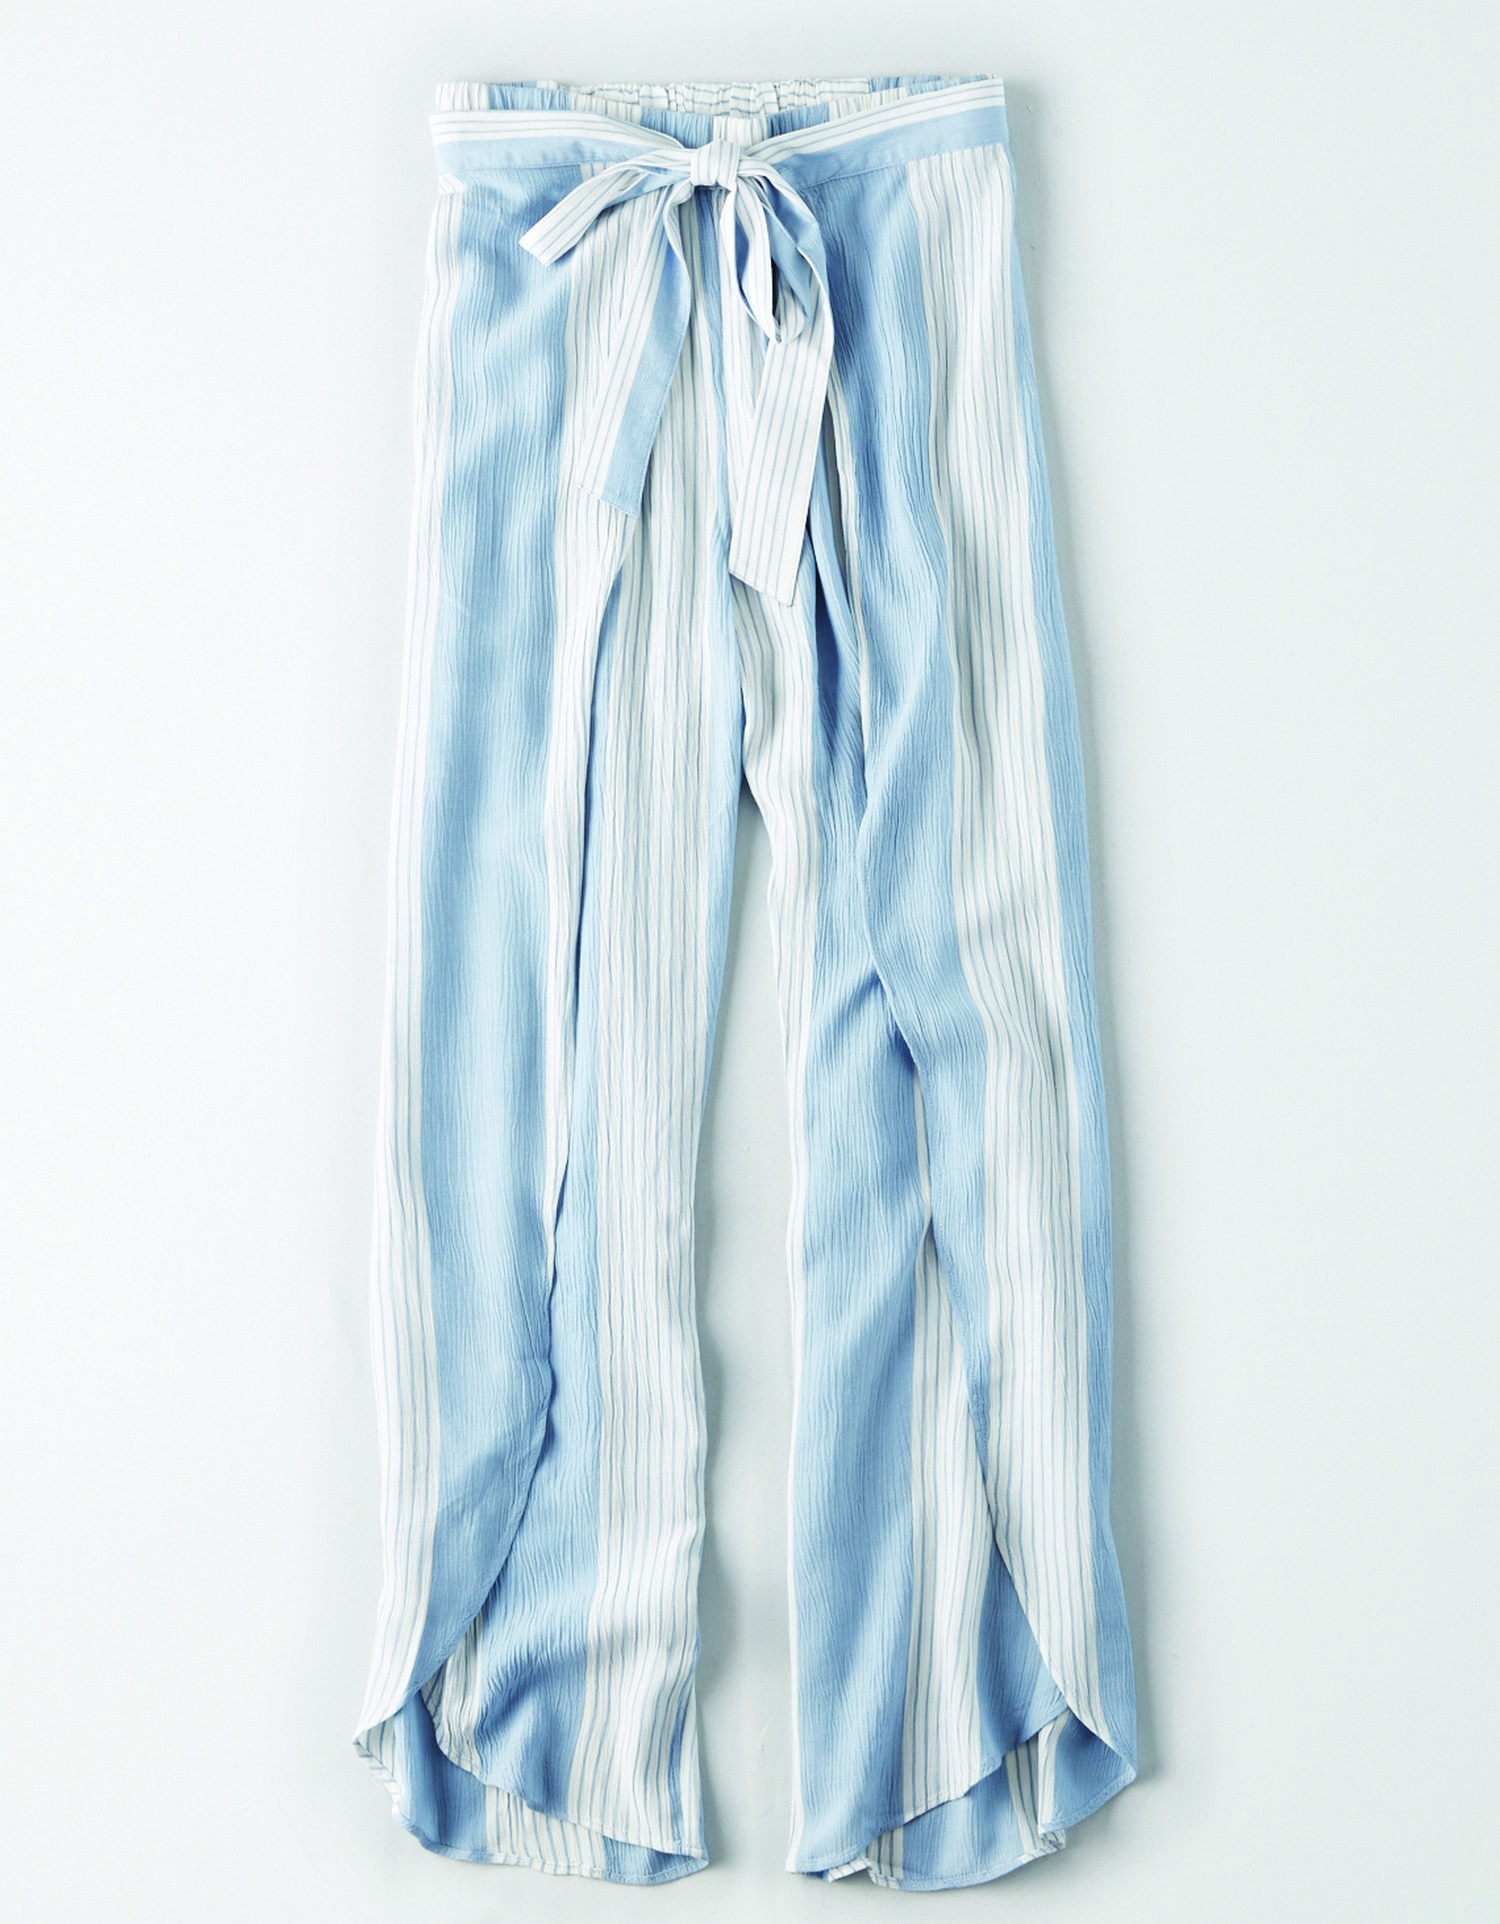 AE - INTL - Apparel - W - 2042 KNOT TIE TULIP PANT - Blue w/White vertical stripes - tie waist JP